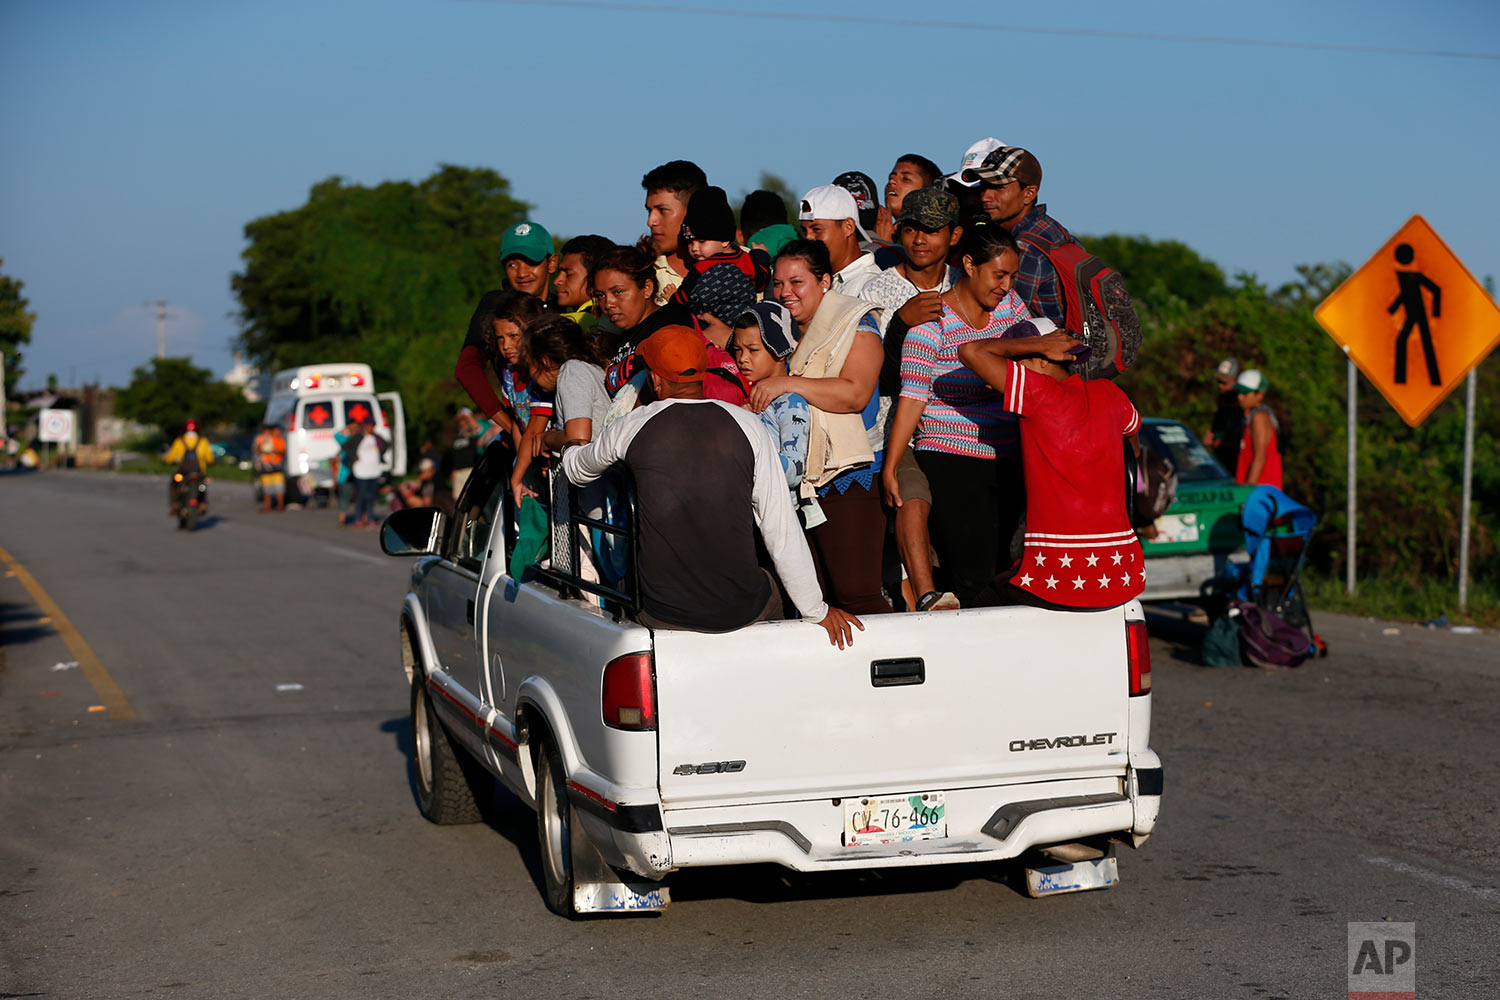 Central American migrants hitch ride, as a thousands strong caravan heads north hoping to reach the U.S. border, near Mapastepec, Mexico, Thursday, Oct. 25, 2018. (AP Photo/Rebecca Blackwell)